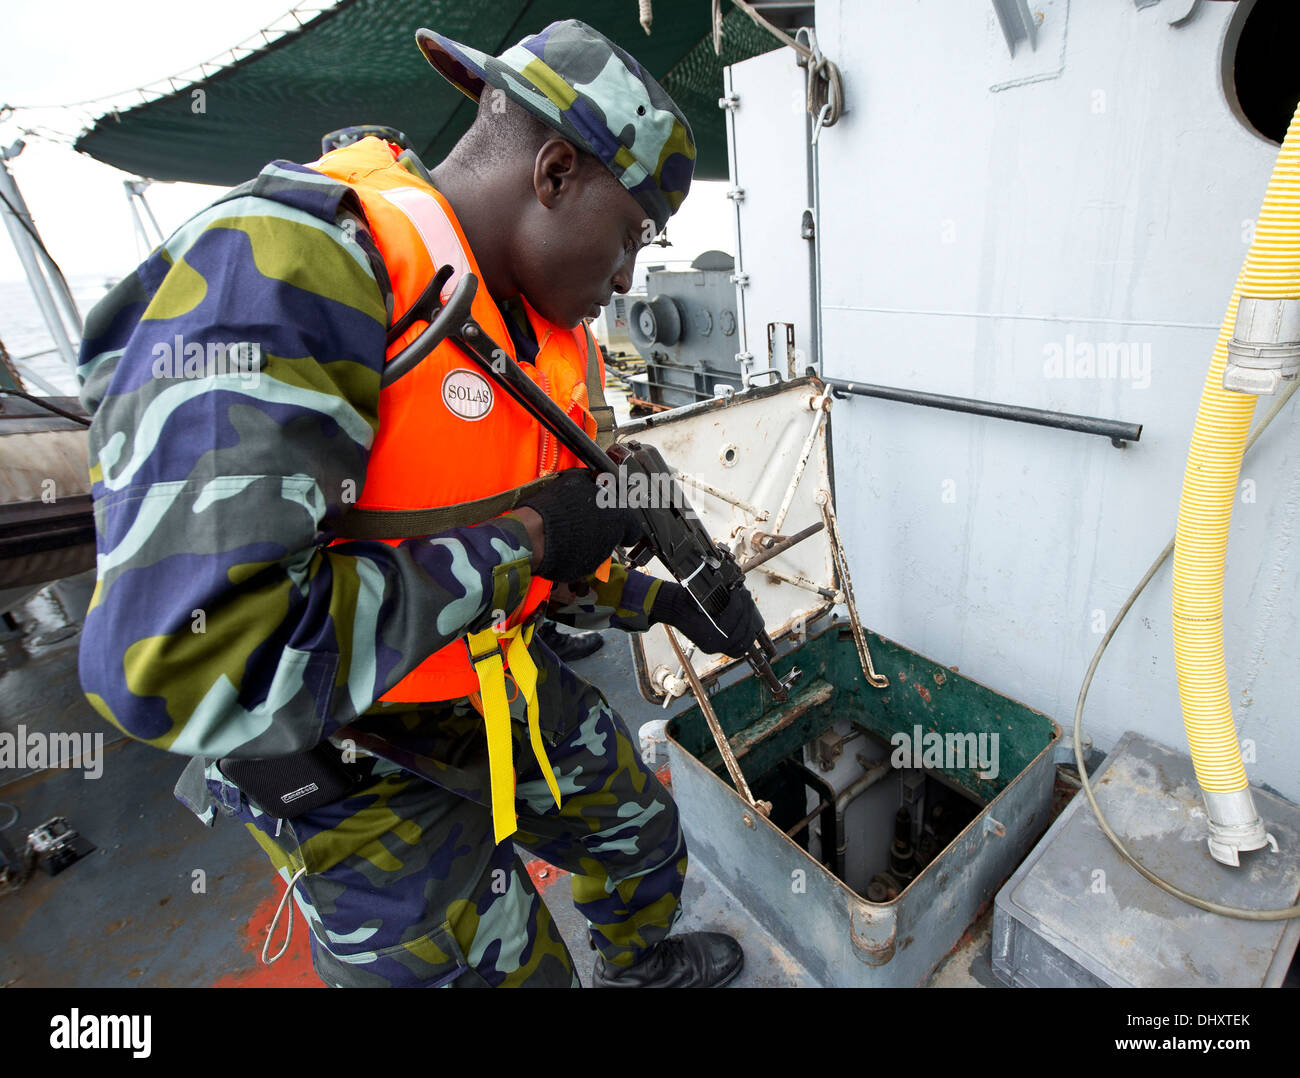 DJIBOUTI, Djibouti (Nov. 14, 2013) - A Uganda People's Defence Force member searches a target vessel during Exercise Cutlass Express 2013 in the Gulf of Tadjoura near Djibouti. Exercise Cutlass Express 2013 is a multinational maritime exercise in the wate - Stock Image